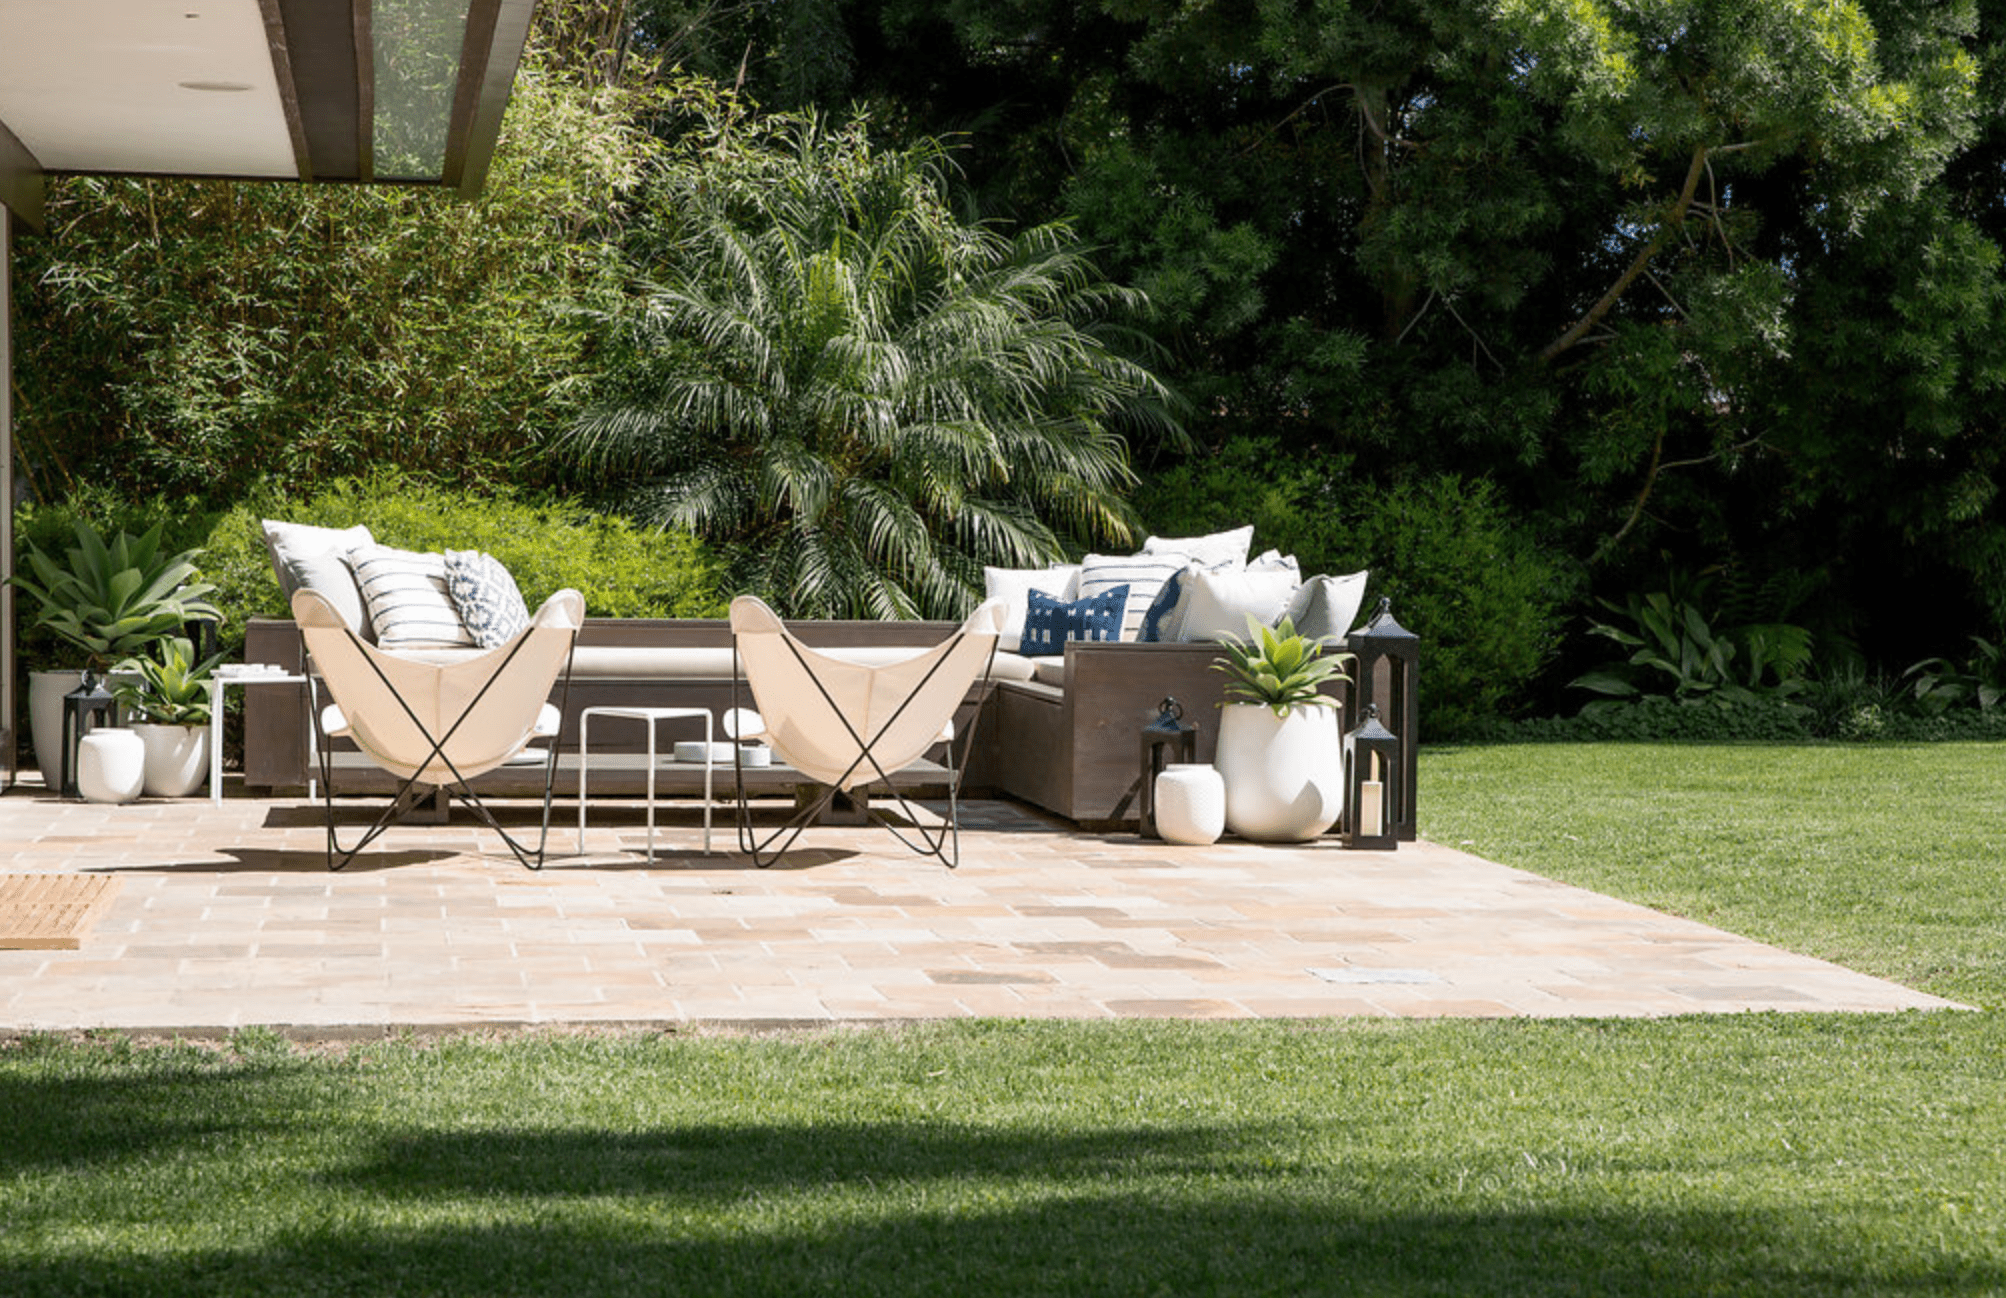 outdoor patio with flexible space